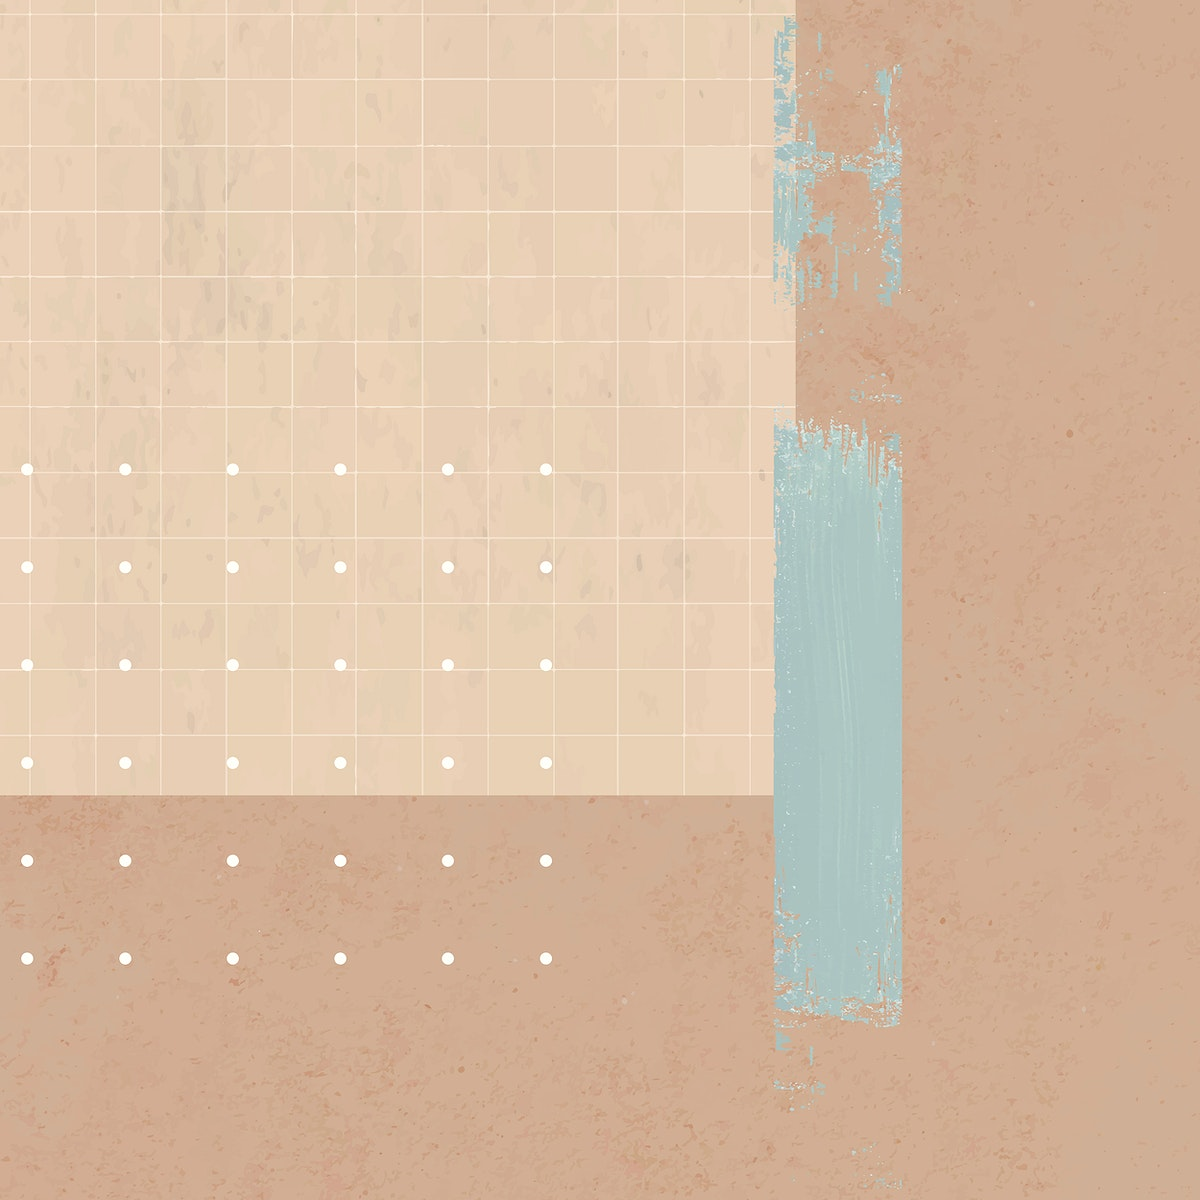 Retro background with white dots and brushstroke vector